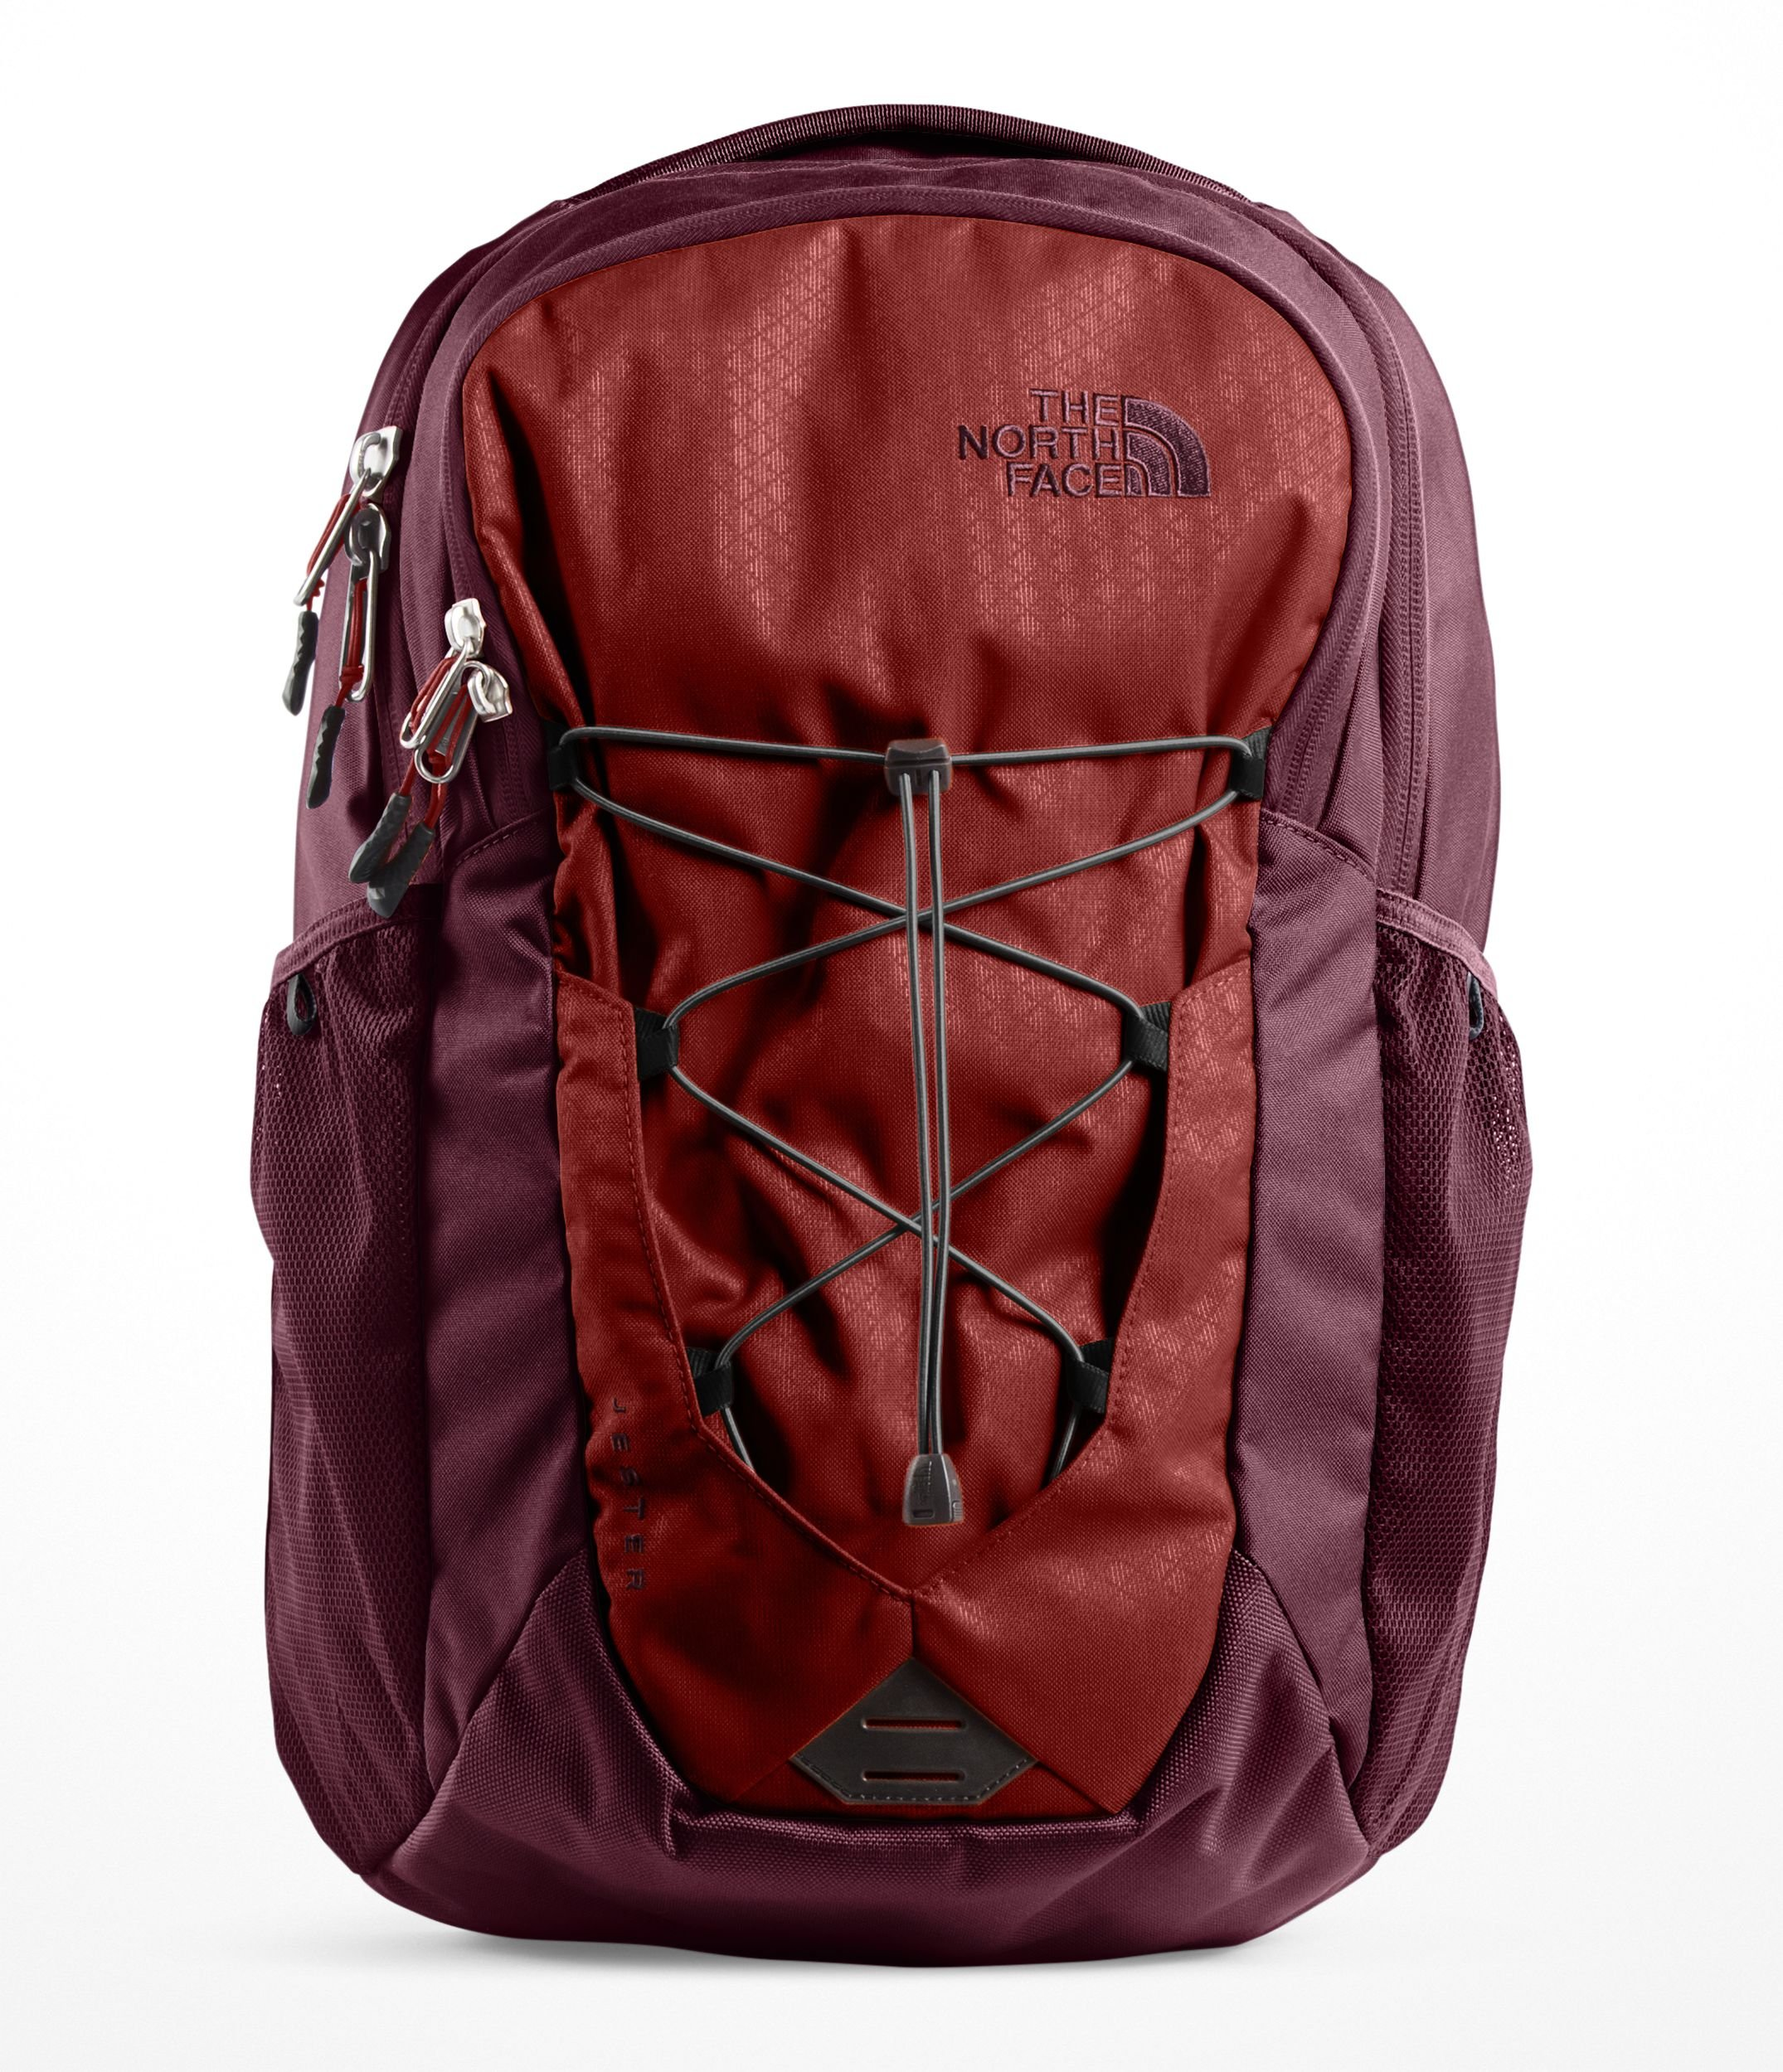 The North Face Jester - Caldera Red & Sequoia Red - OS